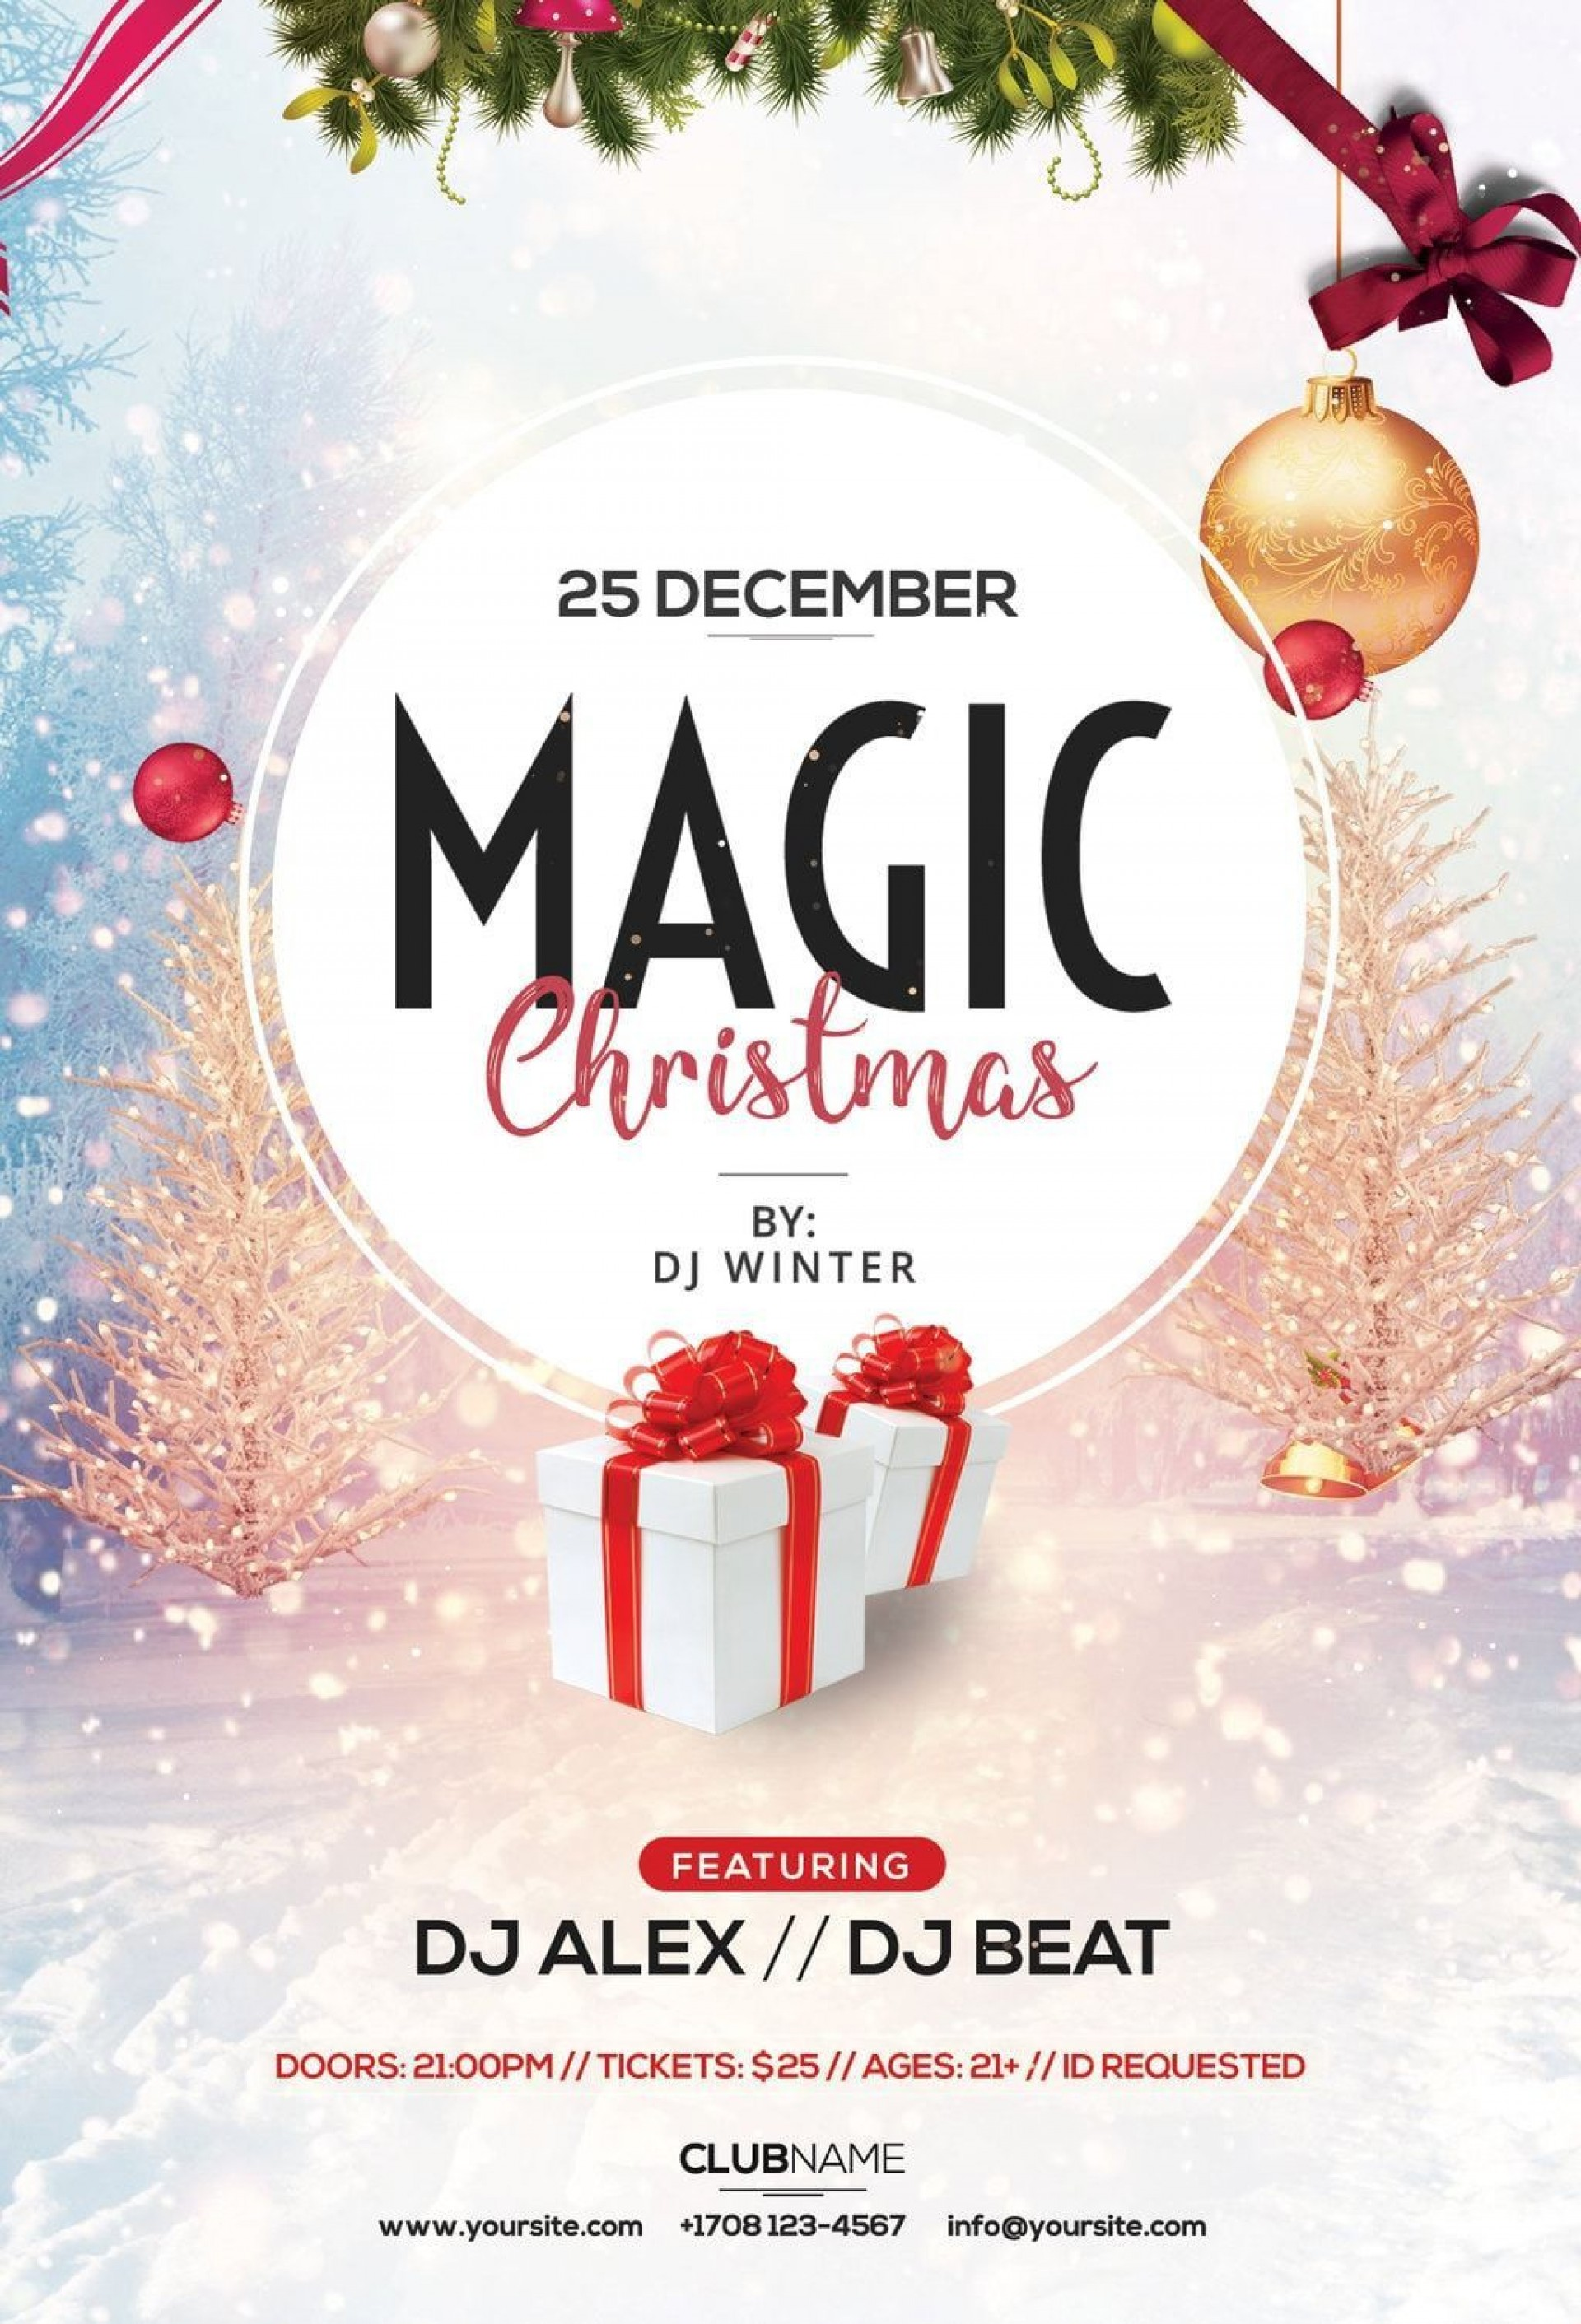 001 Magnificent Christma Flyer Template Free High Def  Party Invitation Psd Download1920